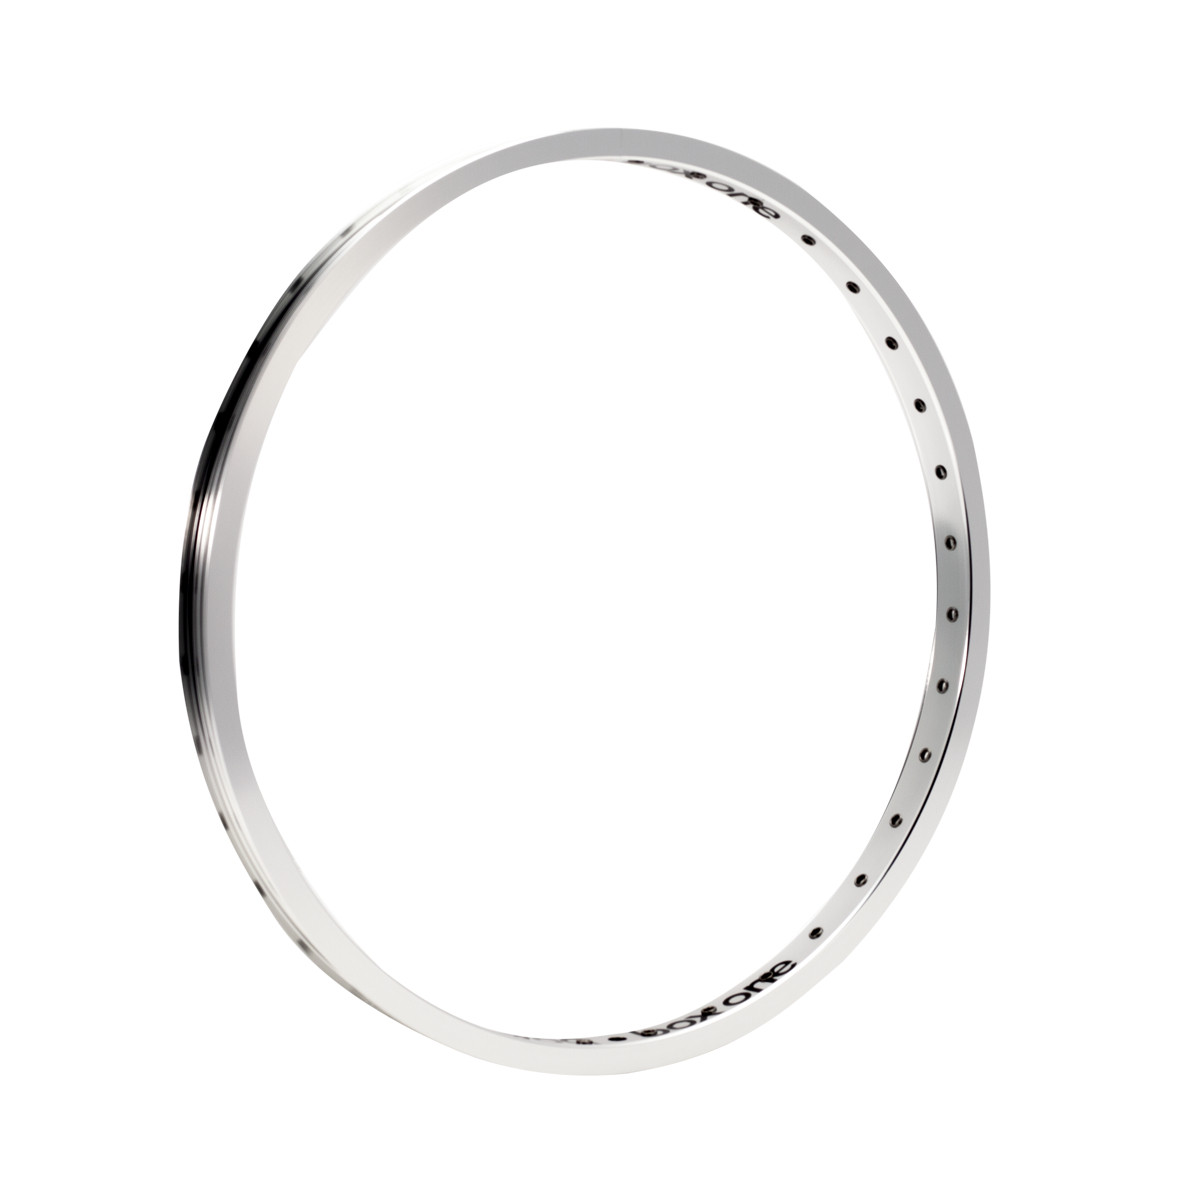 BOX ONE RIM 451X17.5MM 28H WITH BRAKE SURFACE